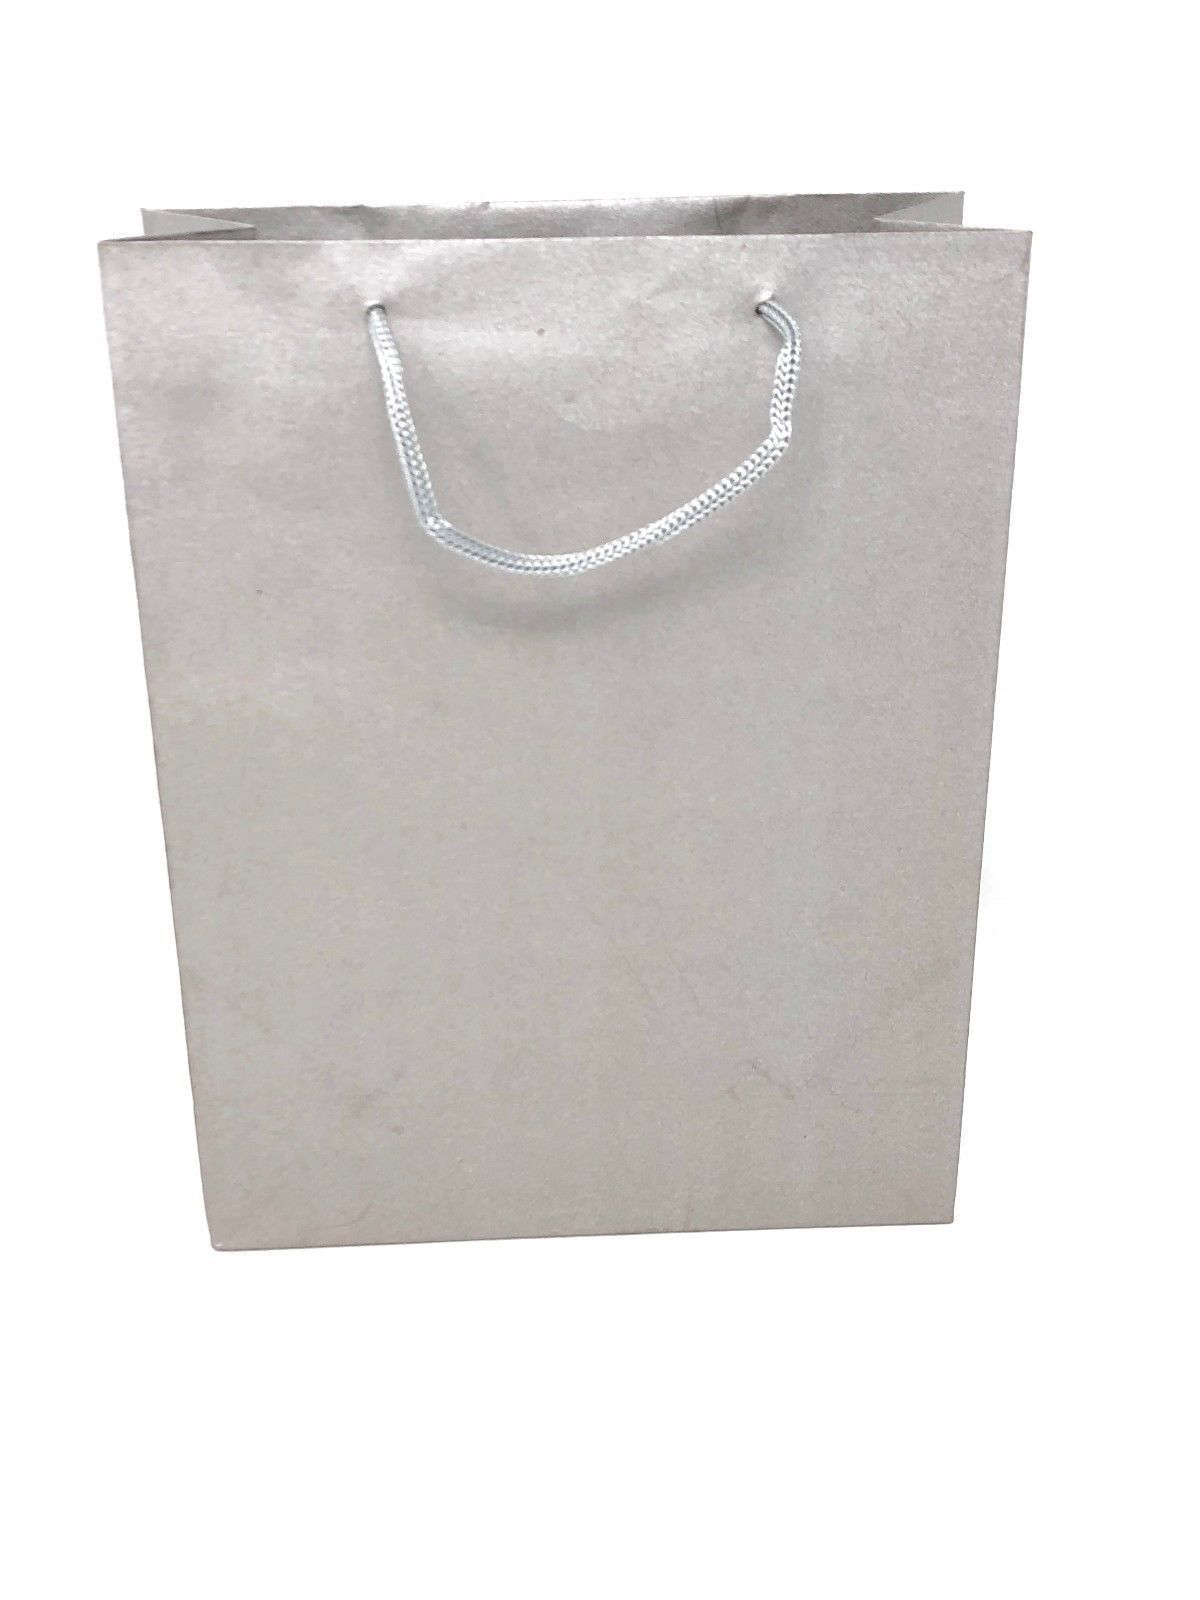 Paper Gift Bags Wholesale Details About 12 Pack Gift Bags Corded Handles Black Silver Wholesale Kraft Paper Gifts Bulk